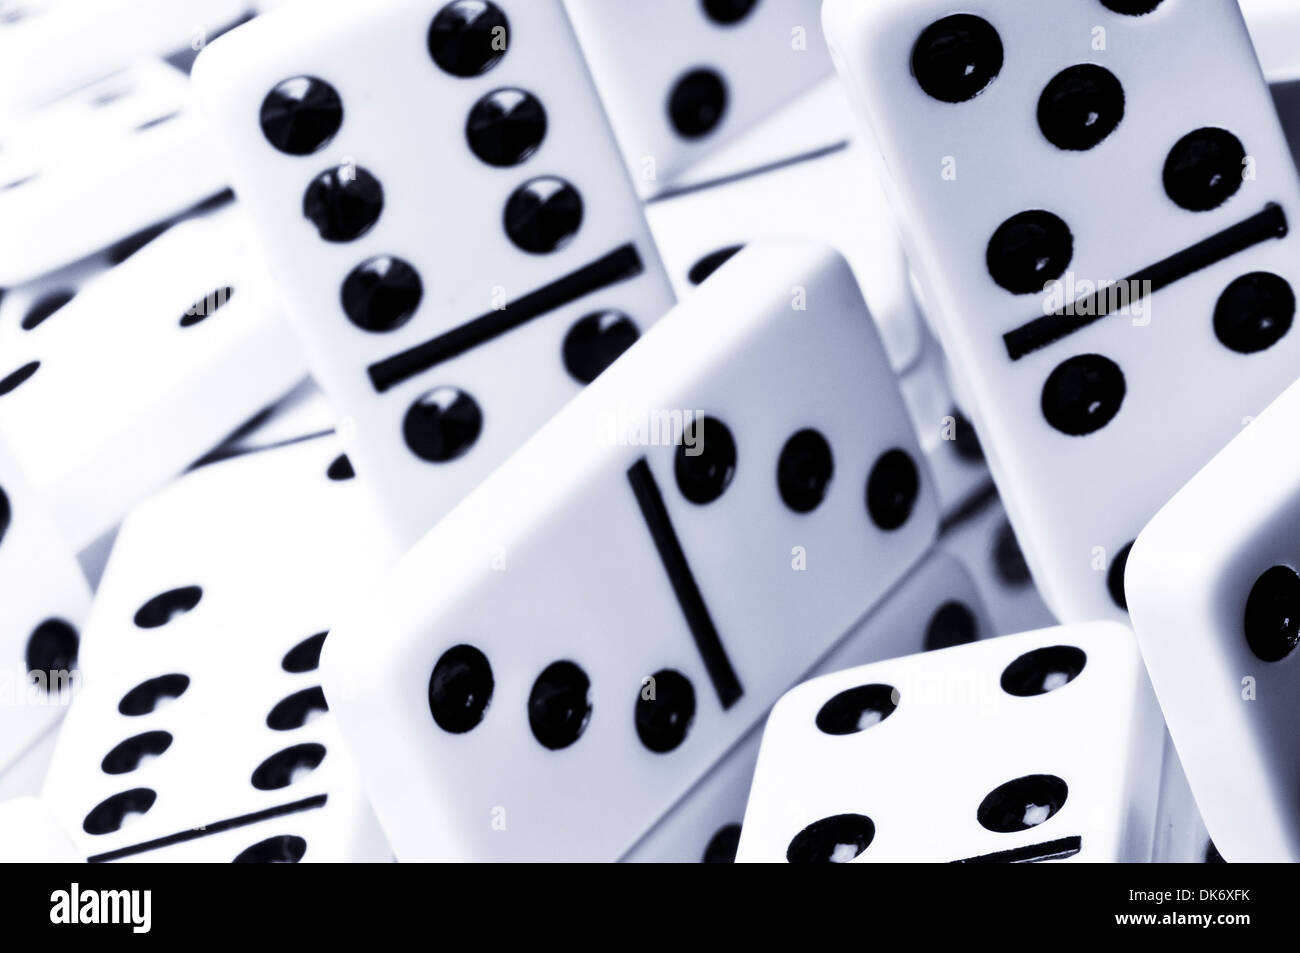 white ivory dominoes pieces background - Stock Image